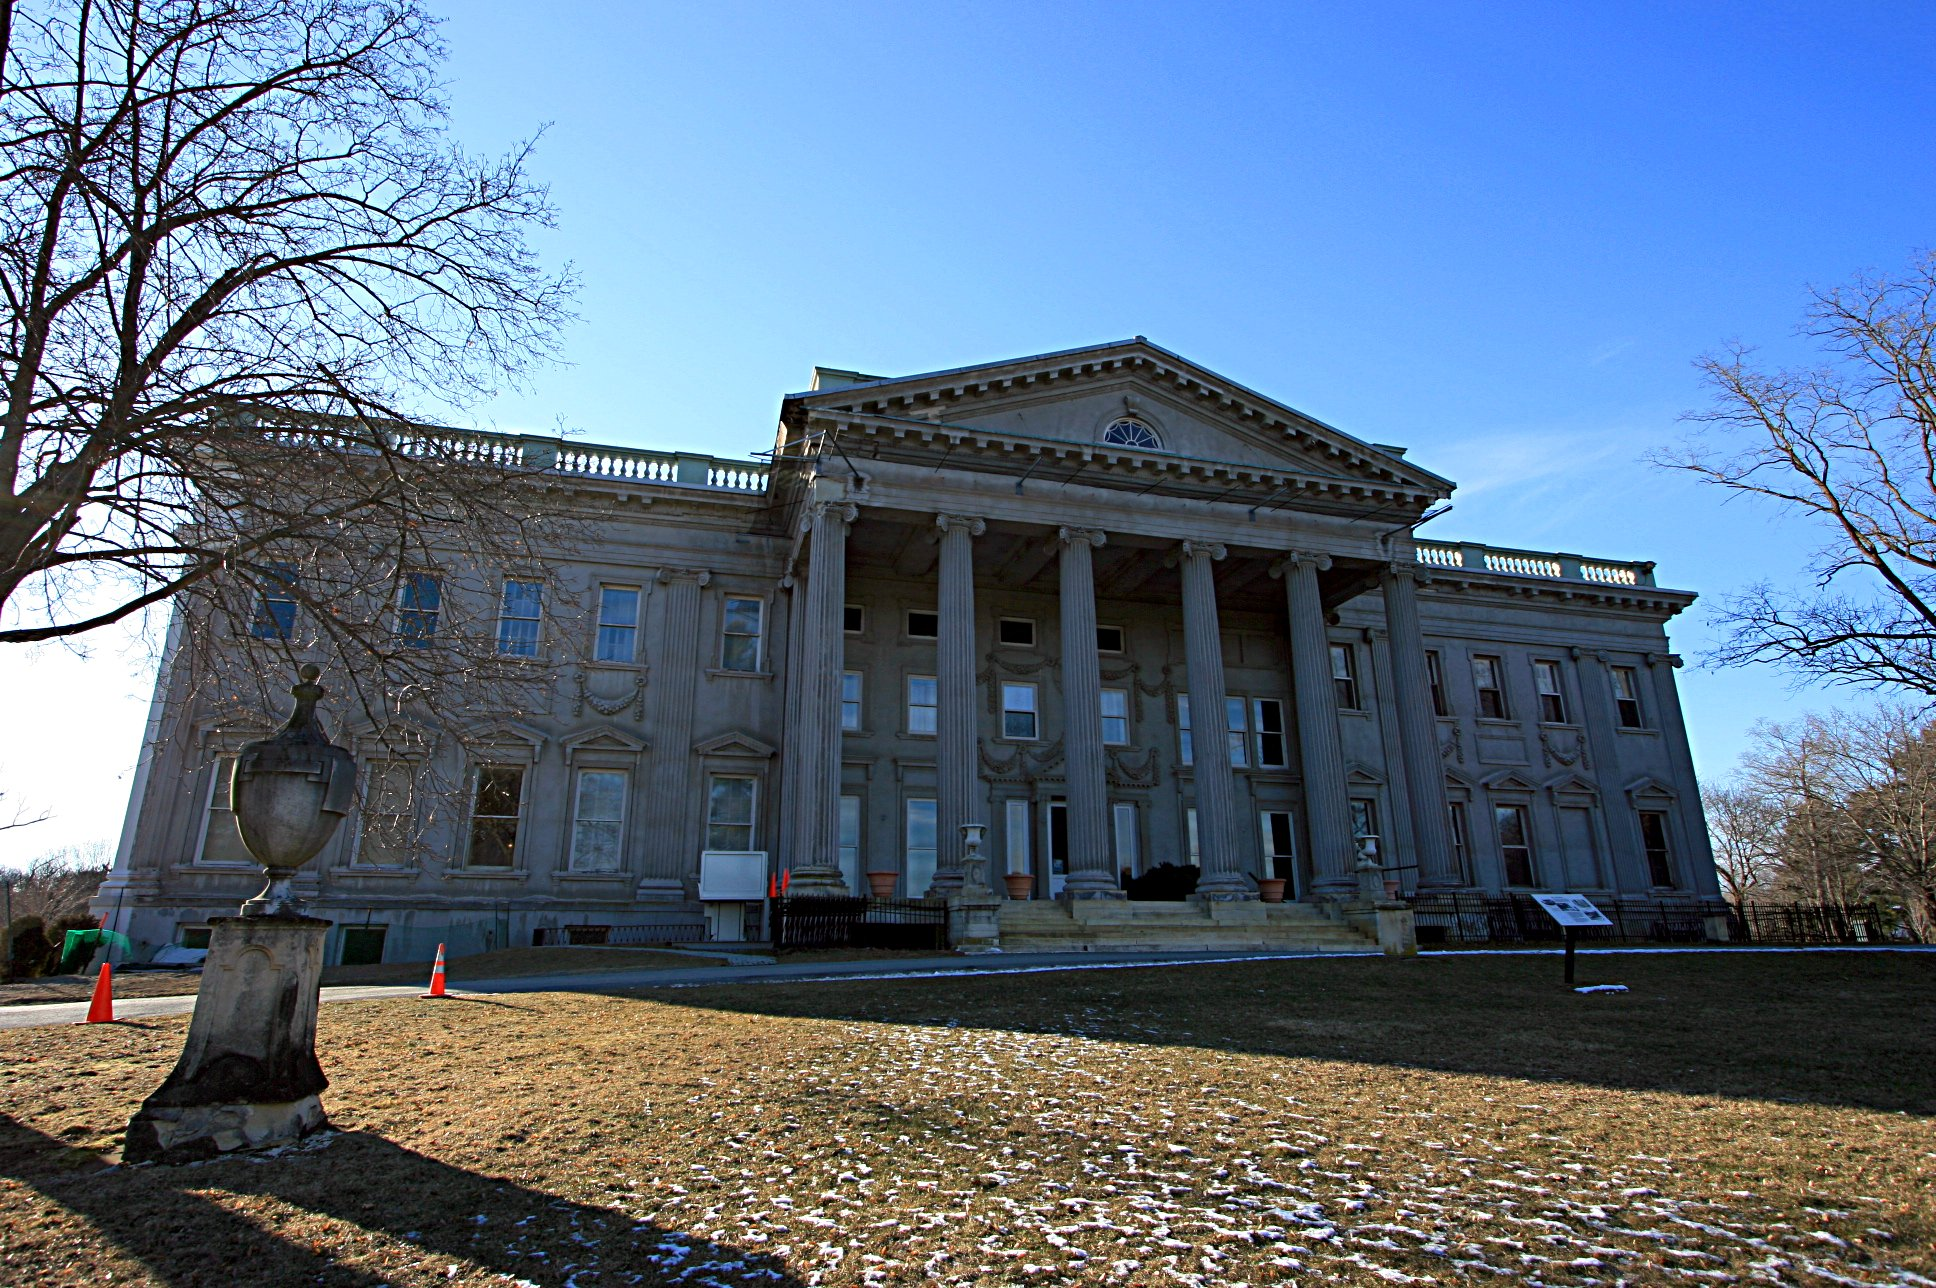 new york mills senior dating site Staatsburgh state historic site / mills mansion, staatsburg: hours, address, staatsburgh state historic site / mills mansion reviews: 45/5 united states  new york (ny)  the history of.